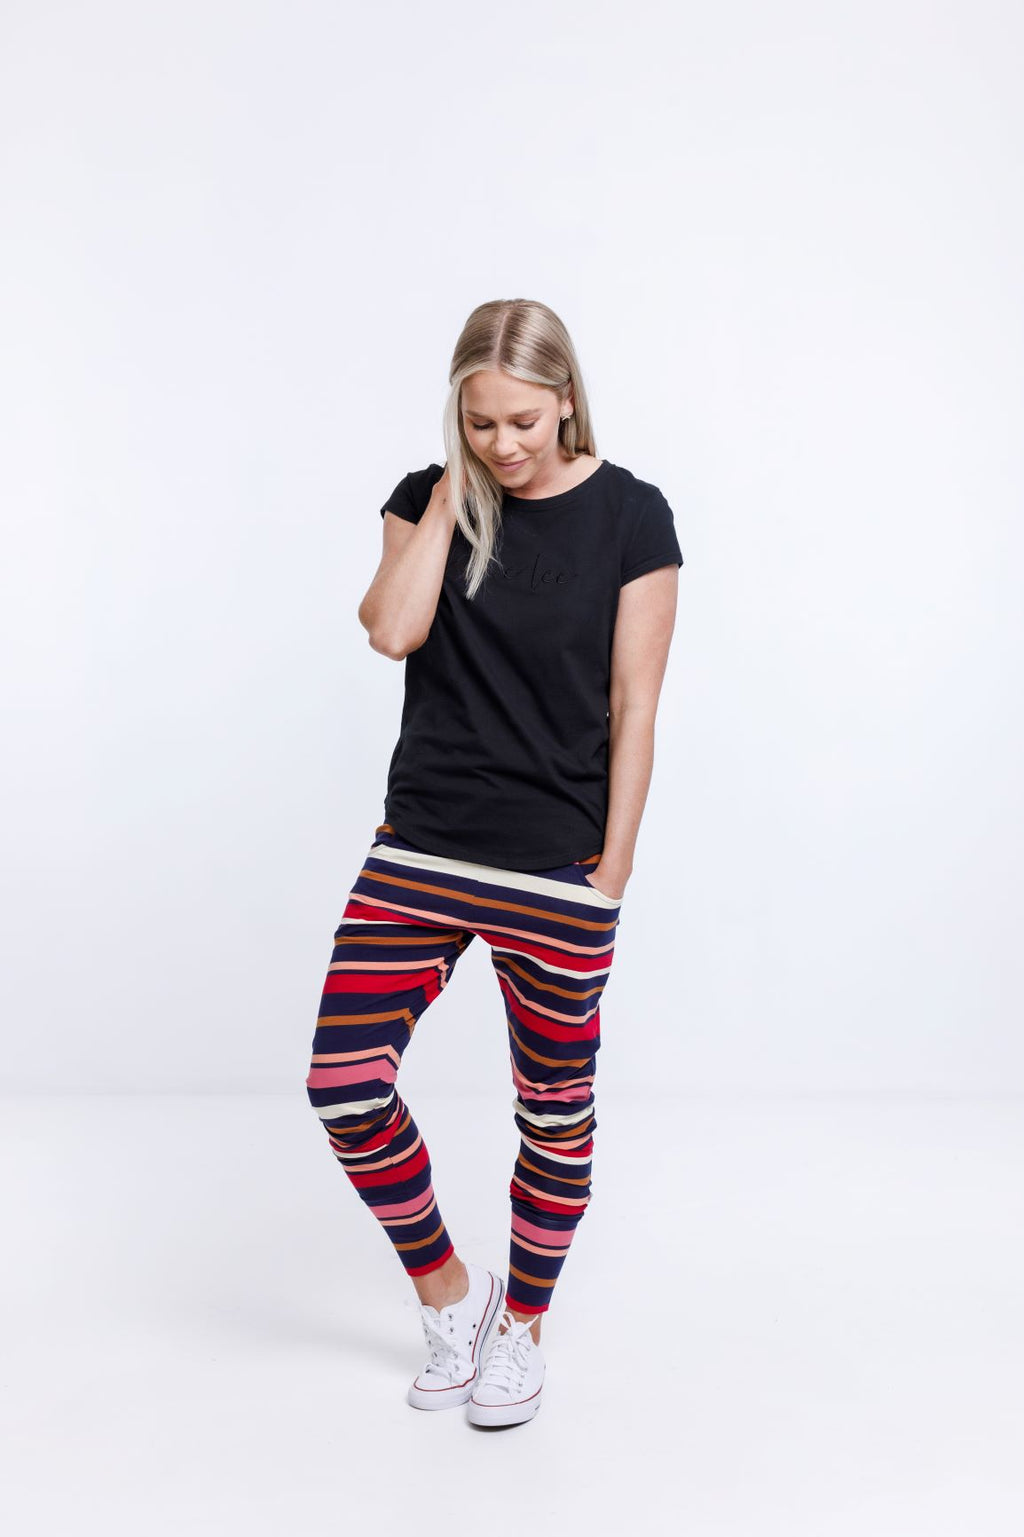 APARTMENT PANTS - Autumn Stripe Print